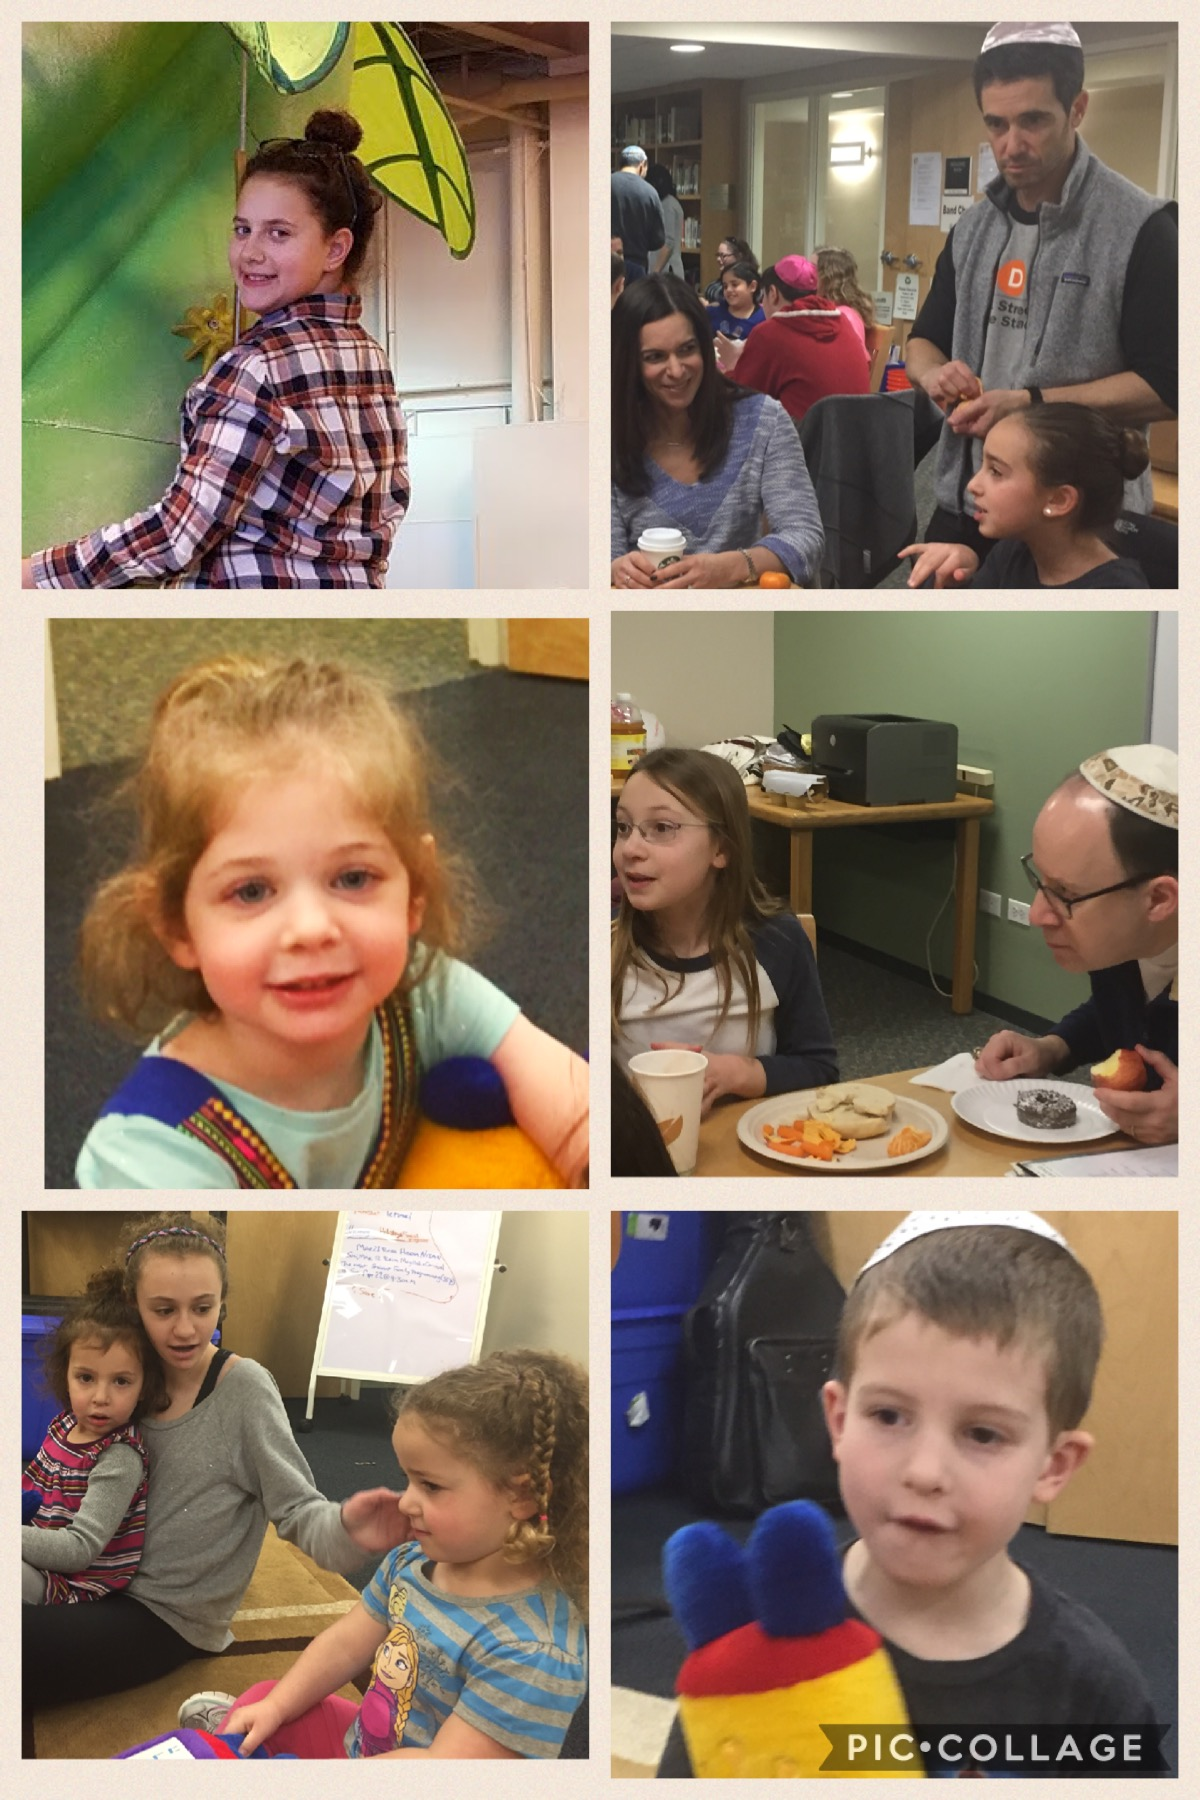 Limmud Collage 3-10-17